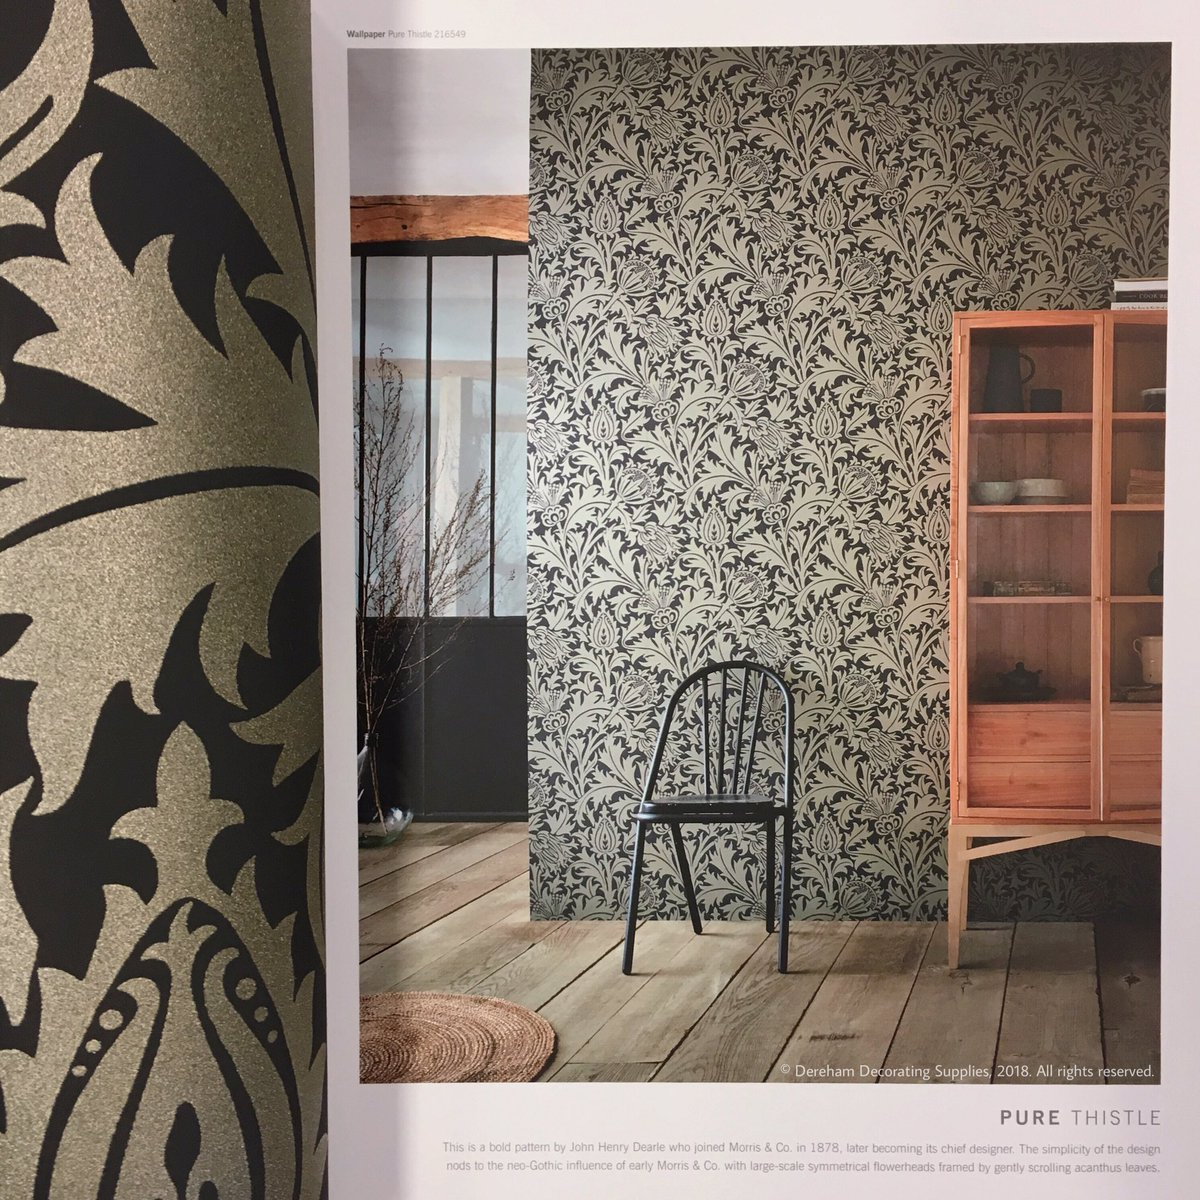 The simplicity of the wallpaper design nods to the neo-Gothic influence of early Morris & Co. with large scale flowerheads framed by scrolling ...